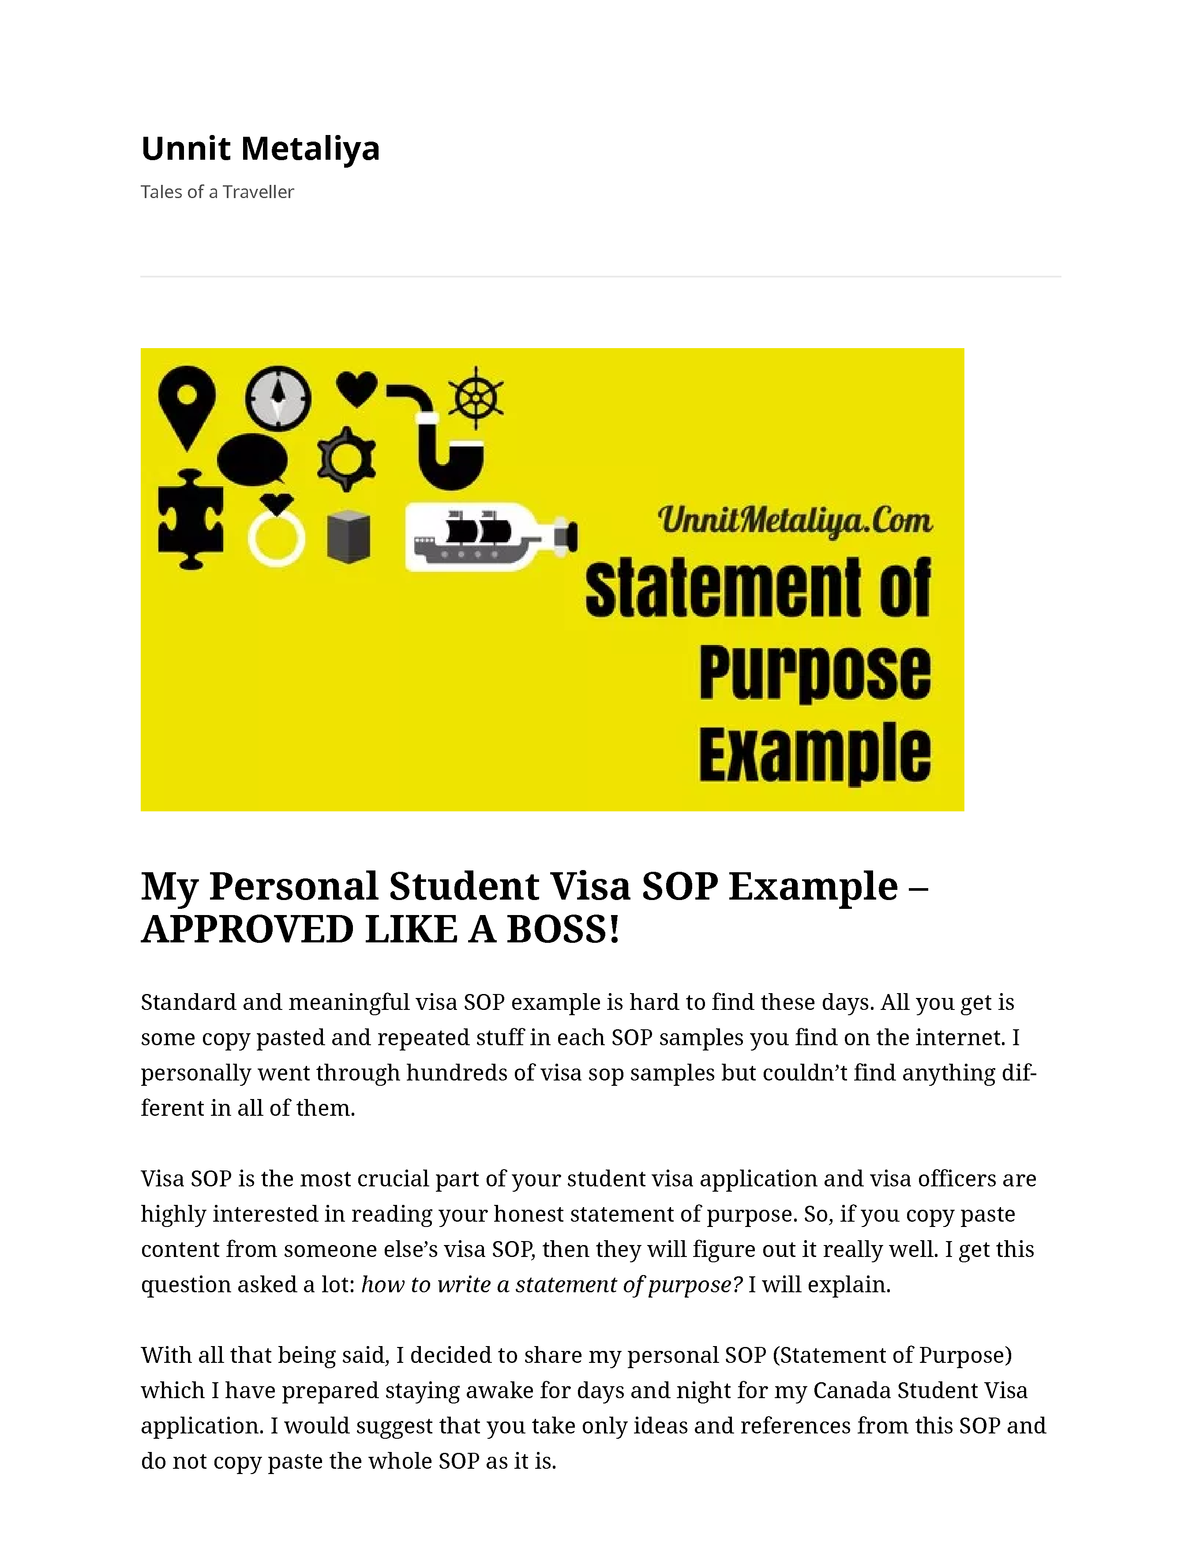 My Personal Student Visa SOP Example - Approved LIKE A BOSS